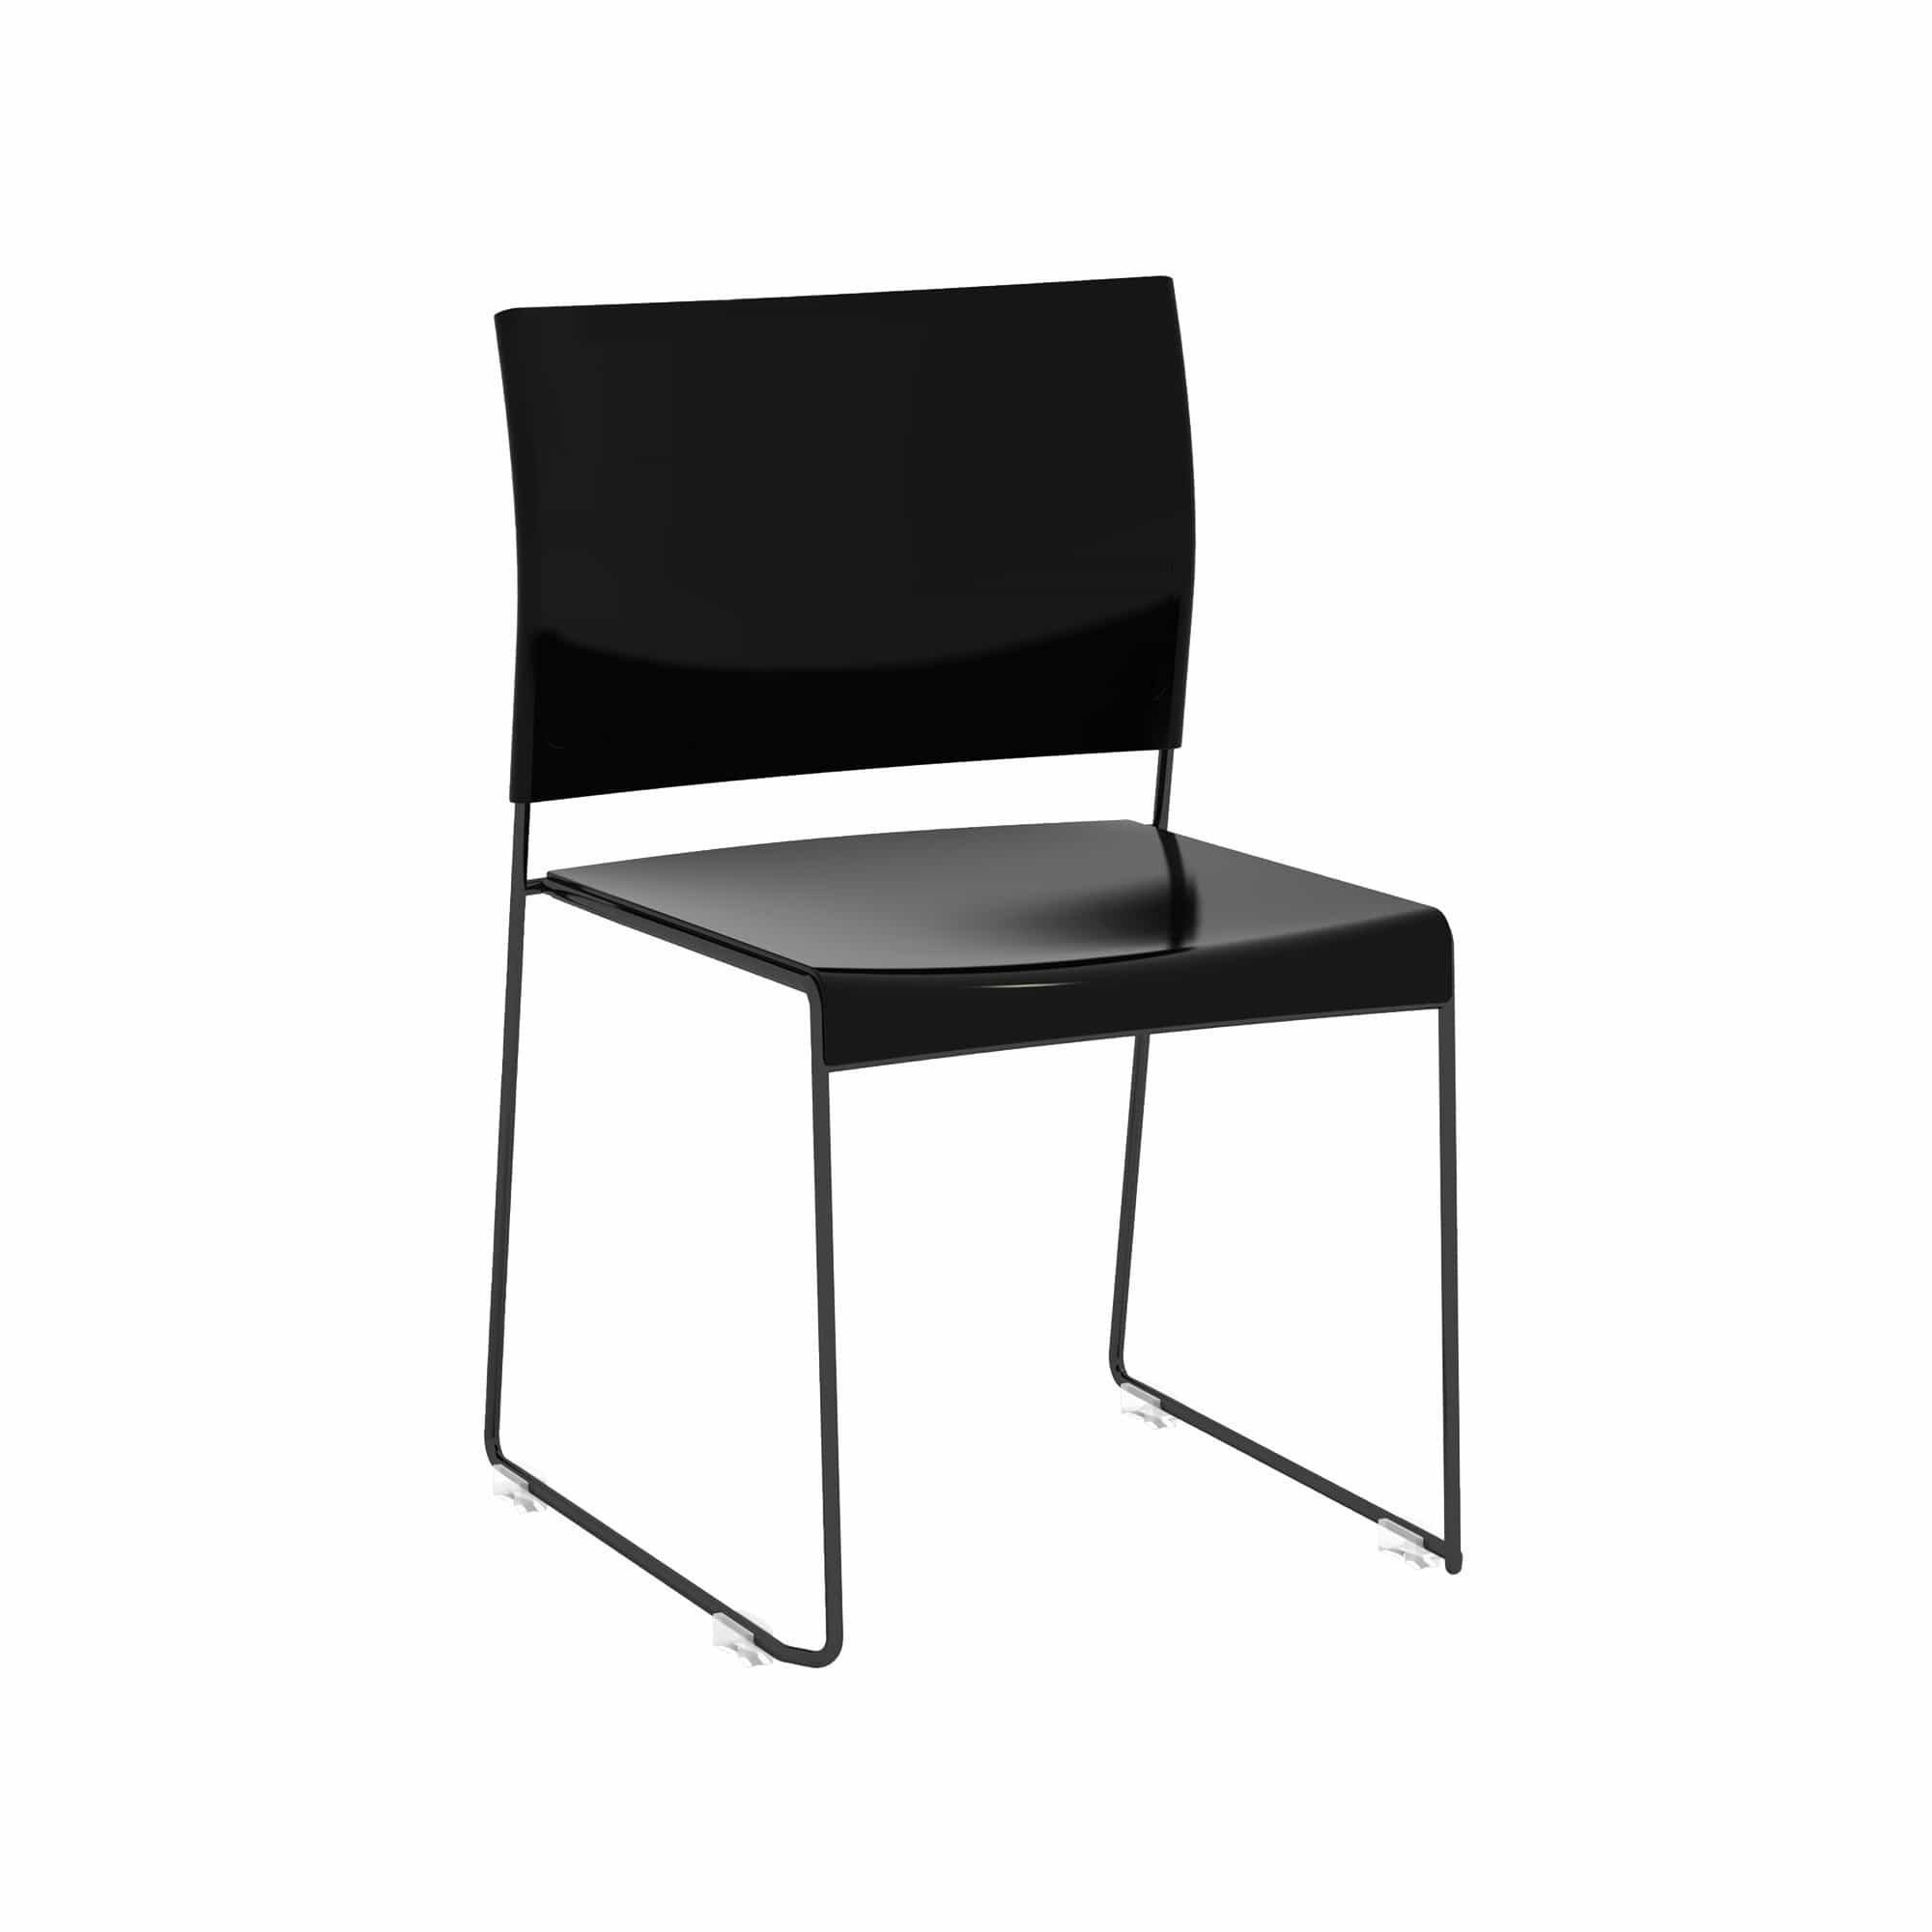 bedinhome - 4271BB Currant™ All-steel, High Density Black Seat / Black Frame 250 lbs Capacity Plastic Furniture Guest Stack Chair (Qty. 4) - Safco - Guest Stack Chair